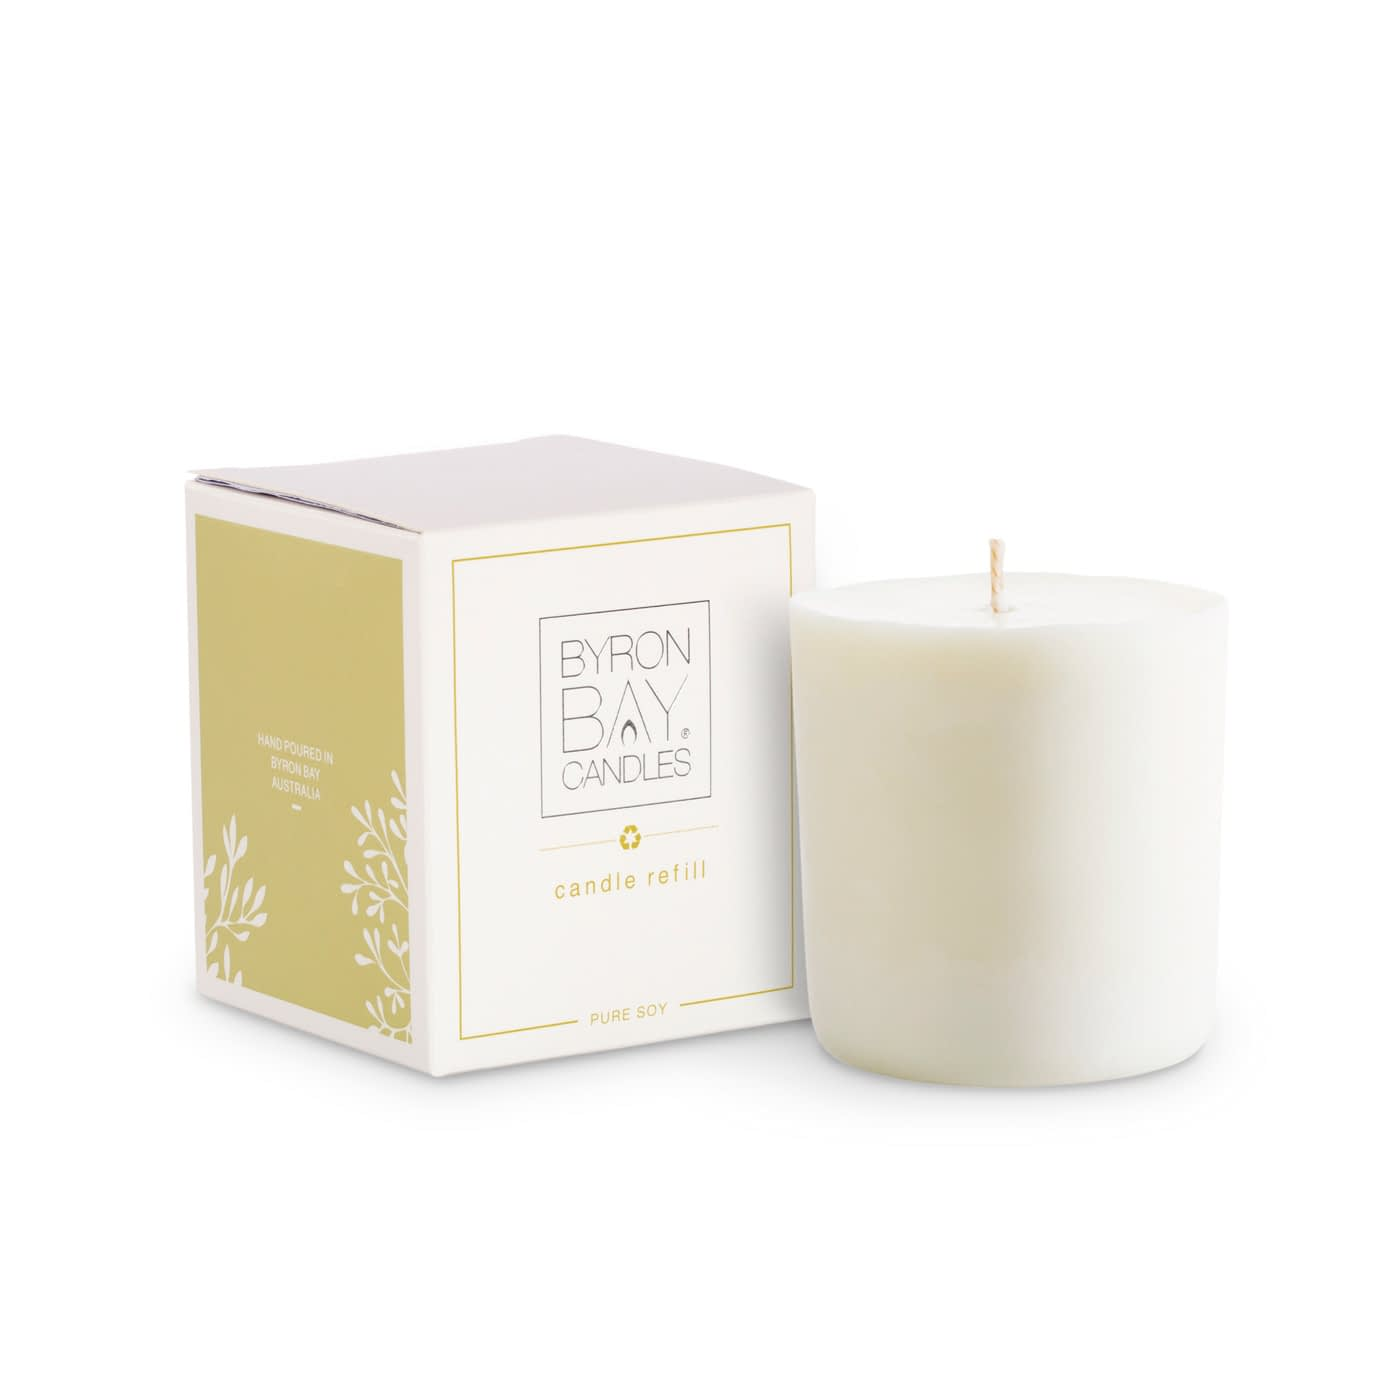 Byron-Bay-Candles-candle-refill